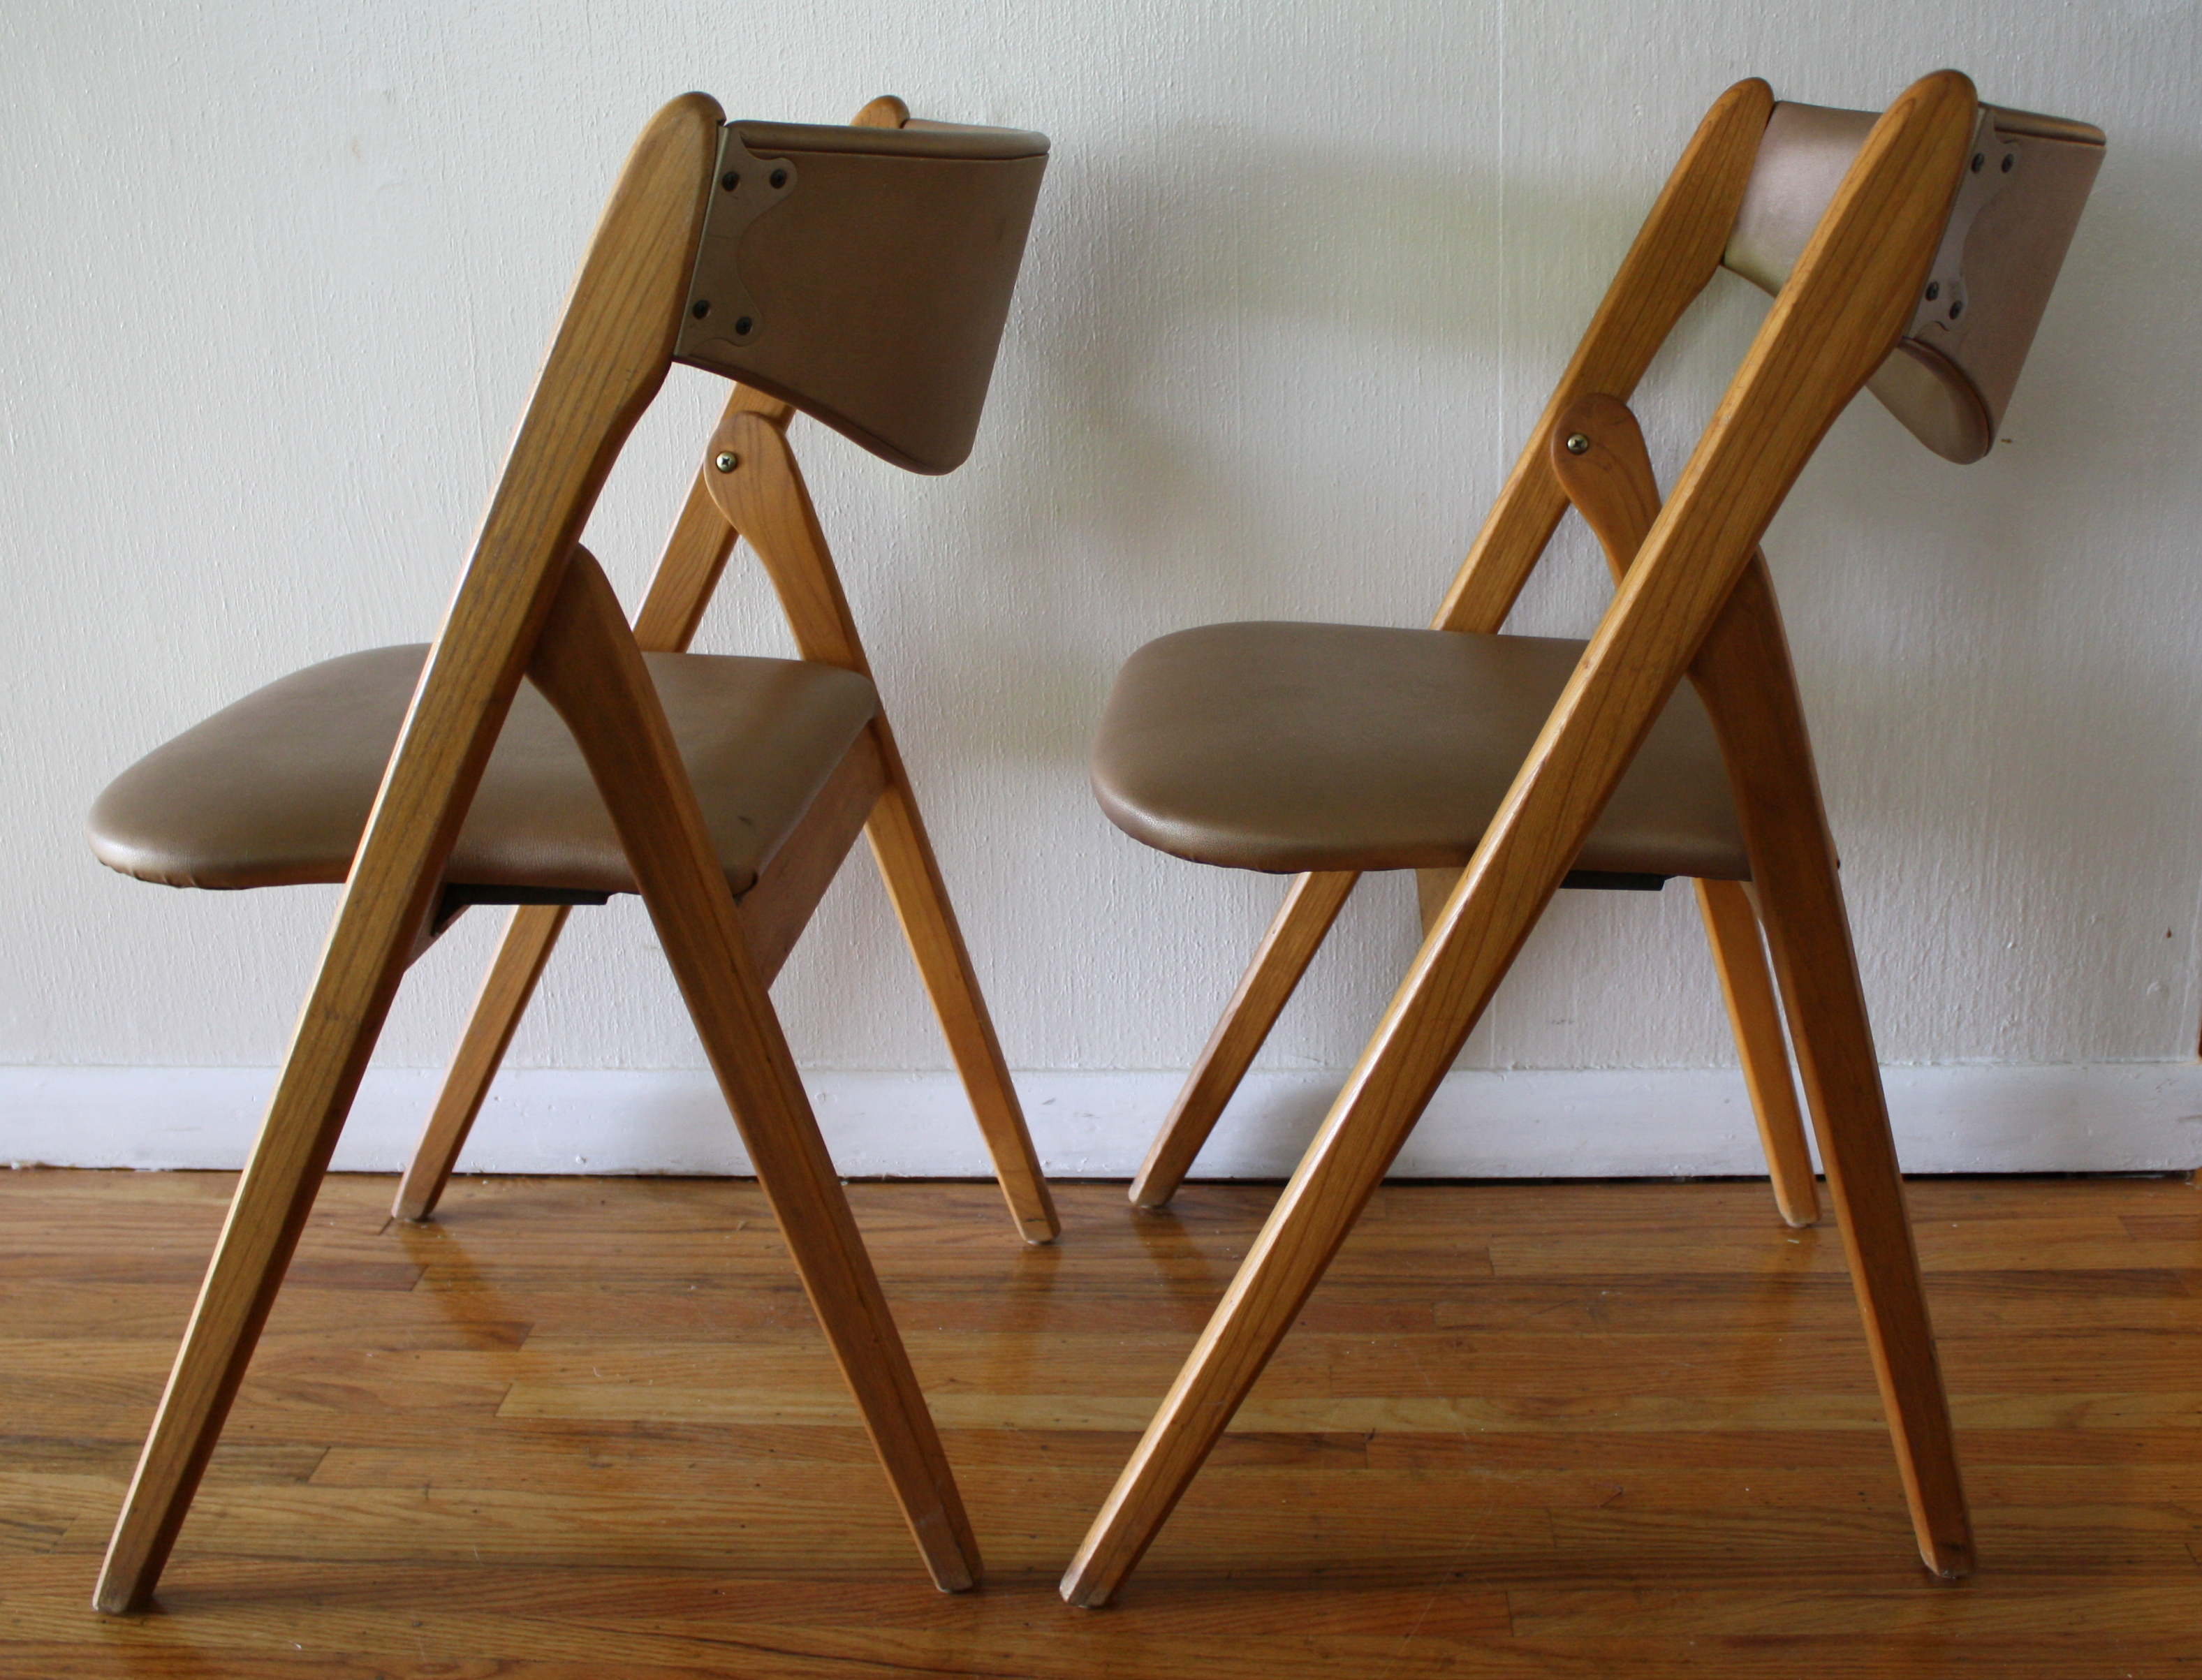 Chairs Folding Mid Century Modern Coronet Folding Chairs Picked Vintage